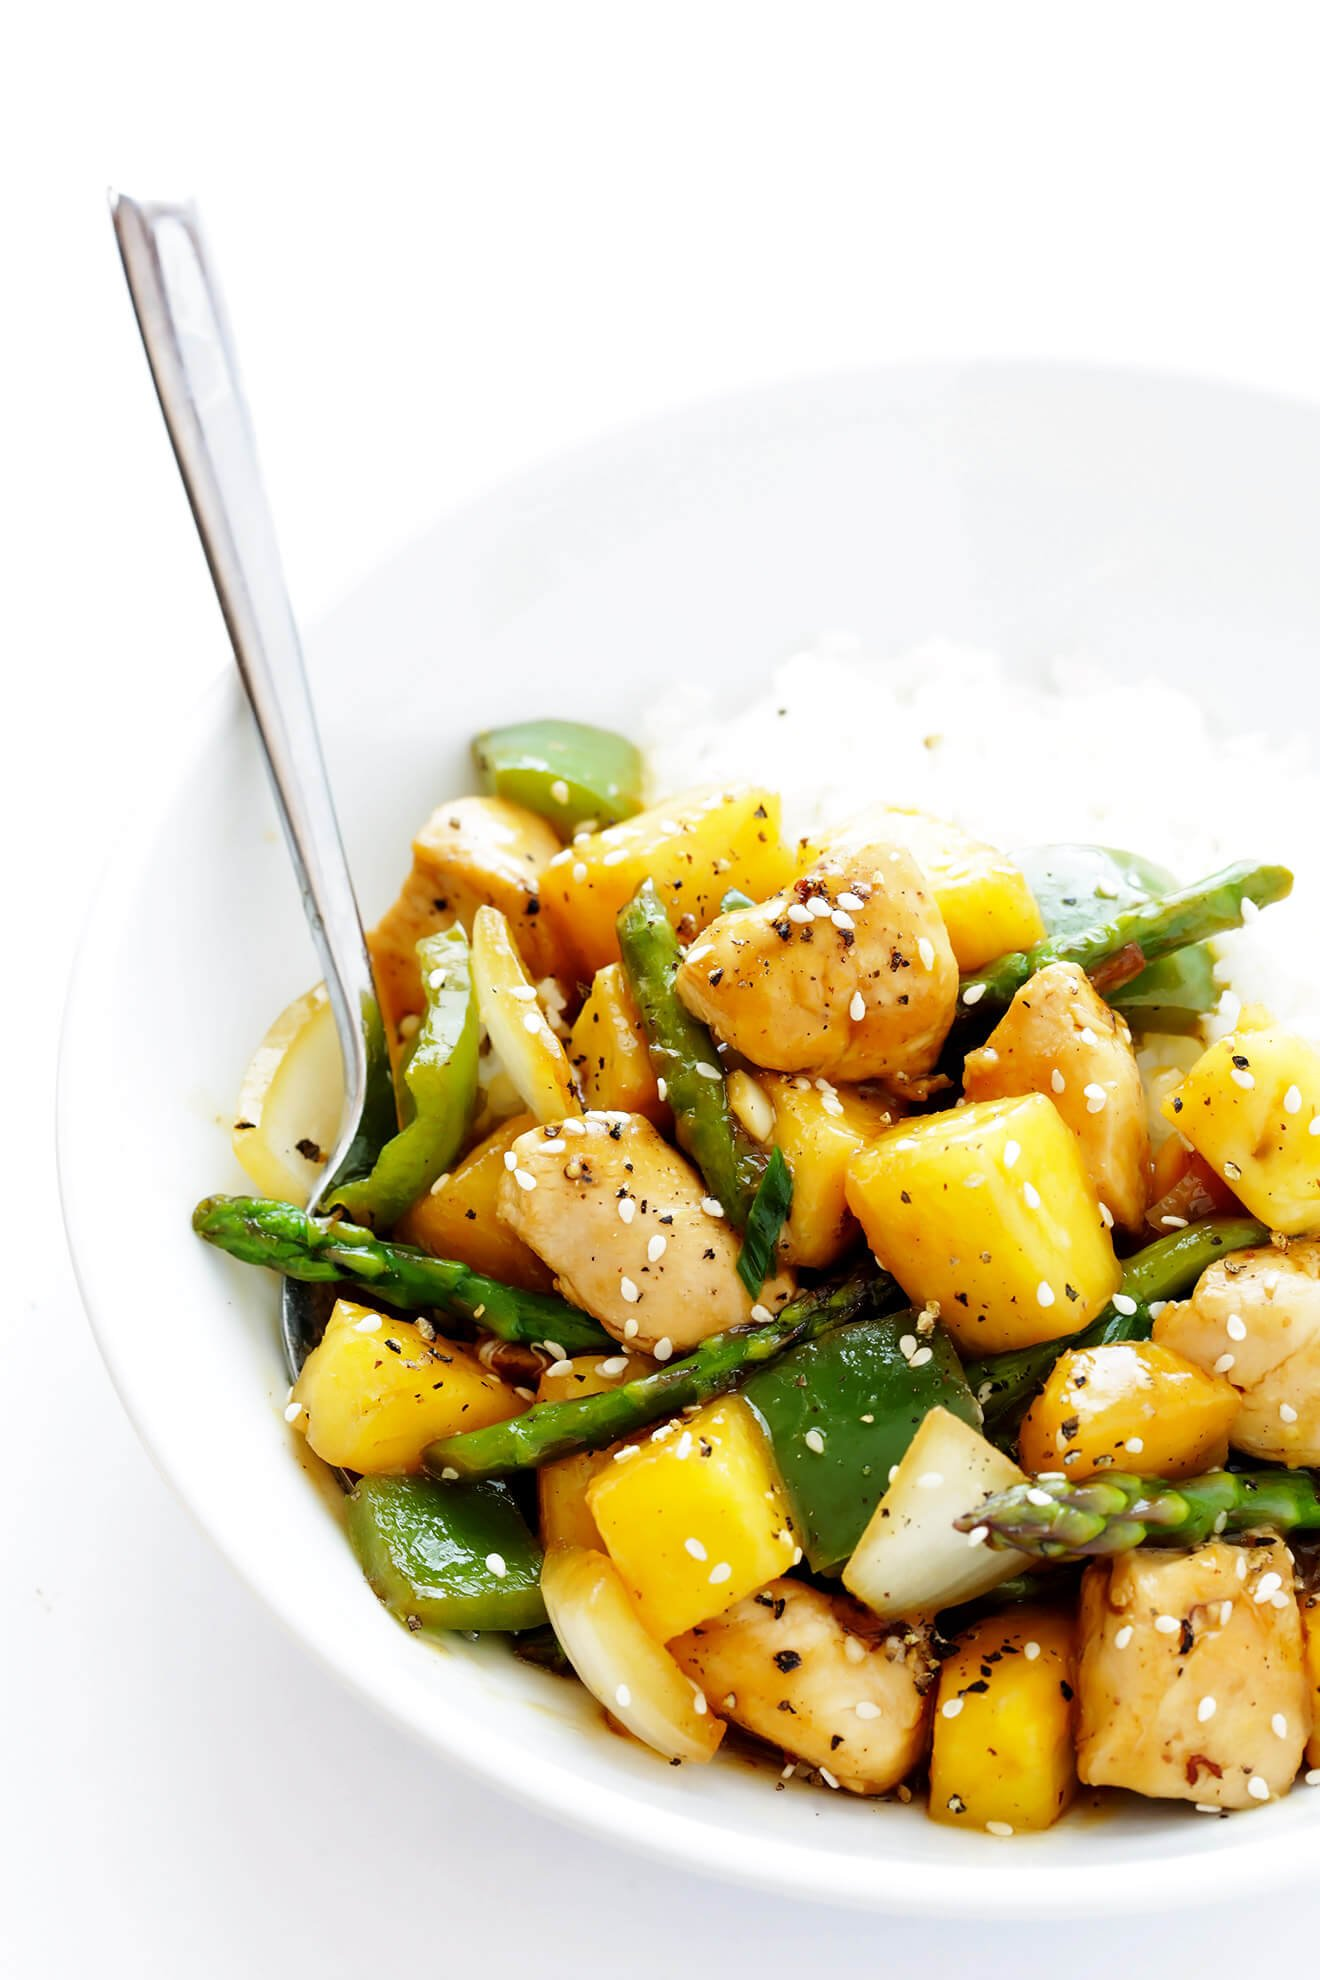 This Pineapple Ginger Chicken Stir-Fry takes about 20 minutes to make, and is full of the BEST fresh sweet and savory flavors. | gimmesomeoven.com